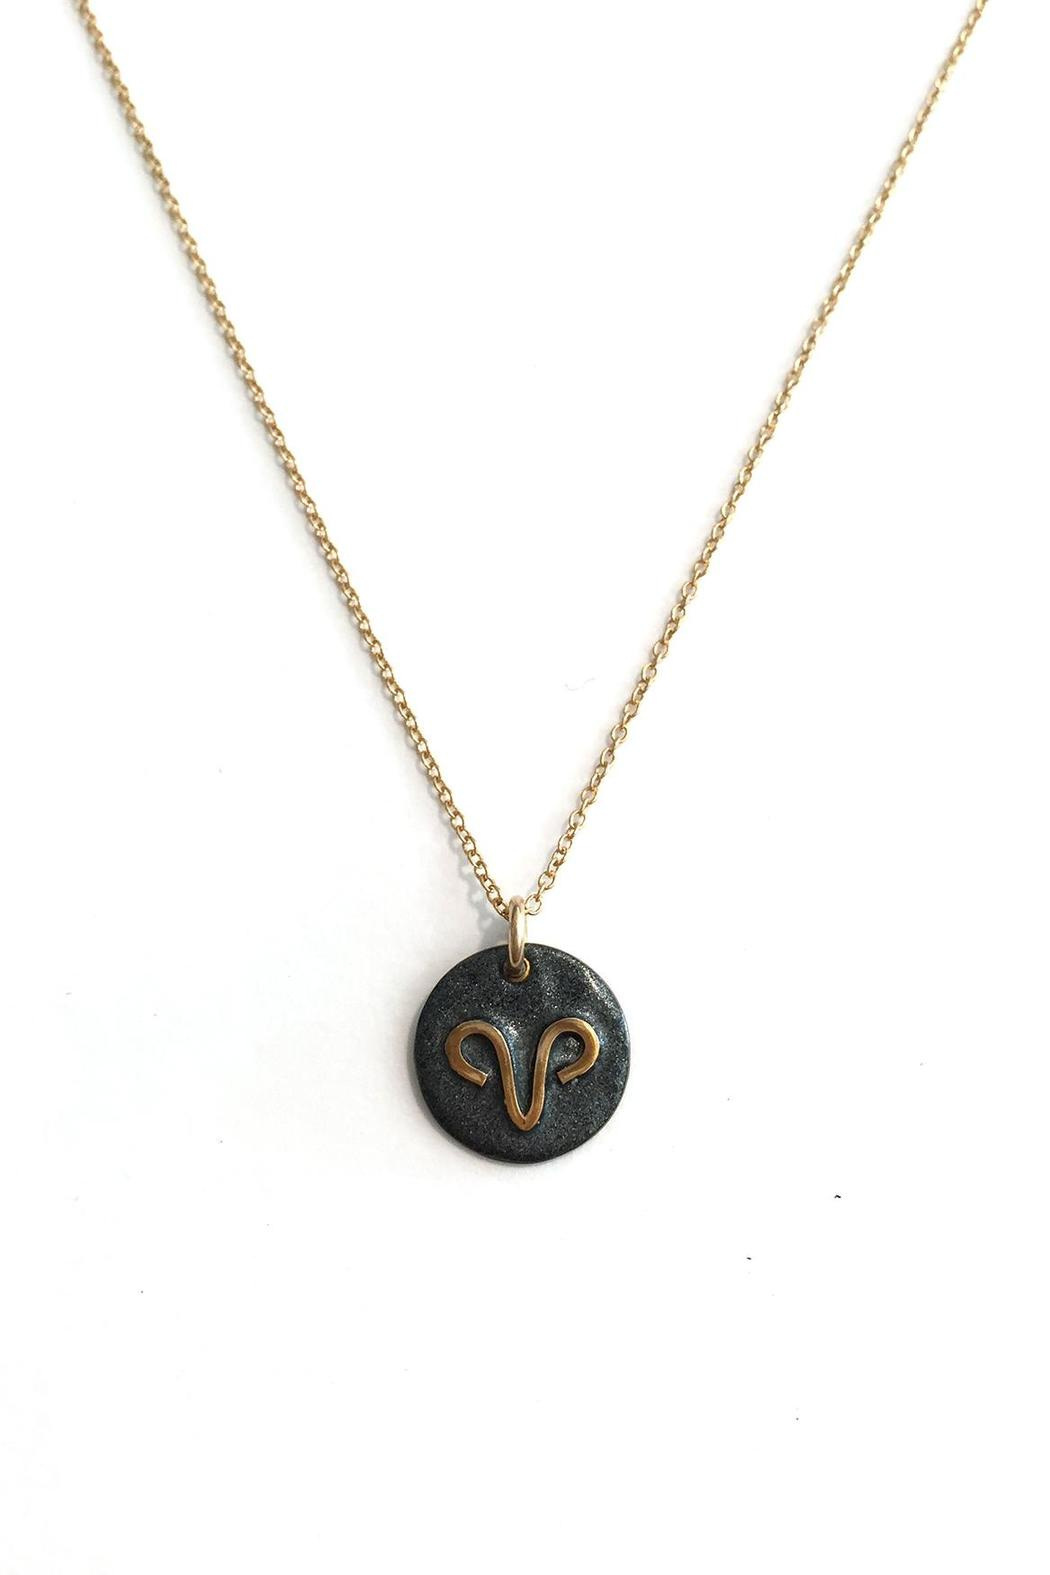 Jurate Brown Zodiac Necklace Aries From California By The